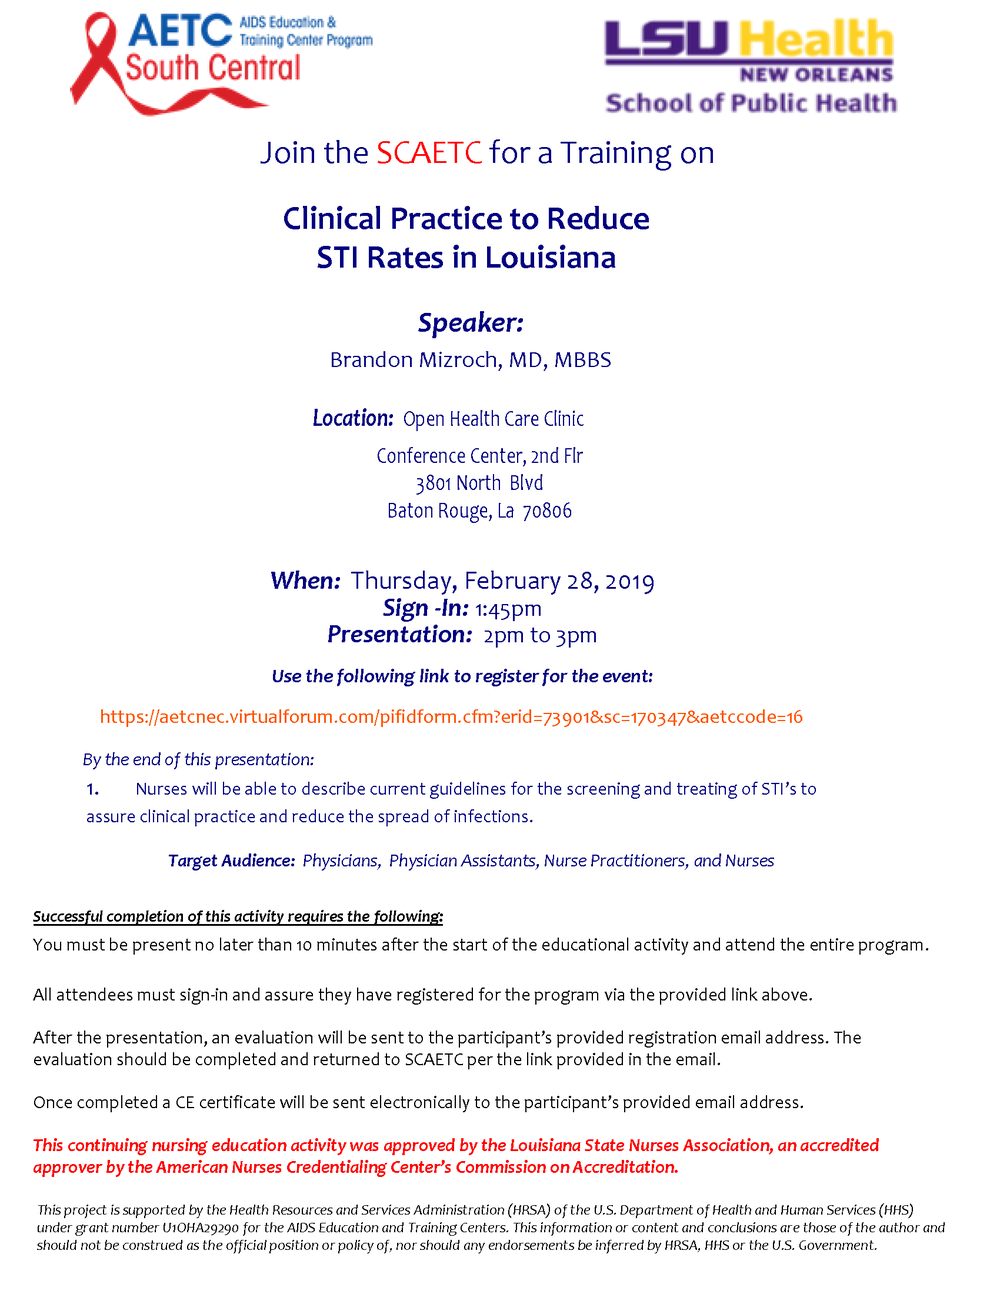 Clinical Practice to Reduce STI Rates in LA.png